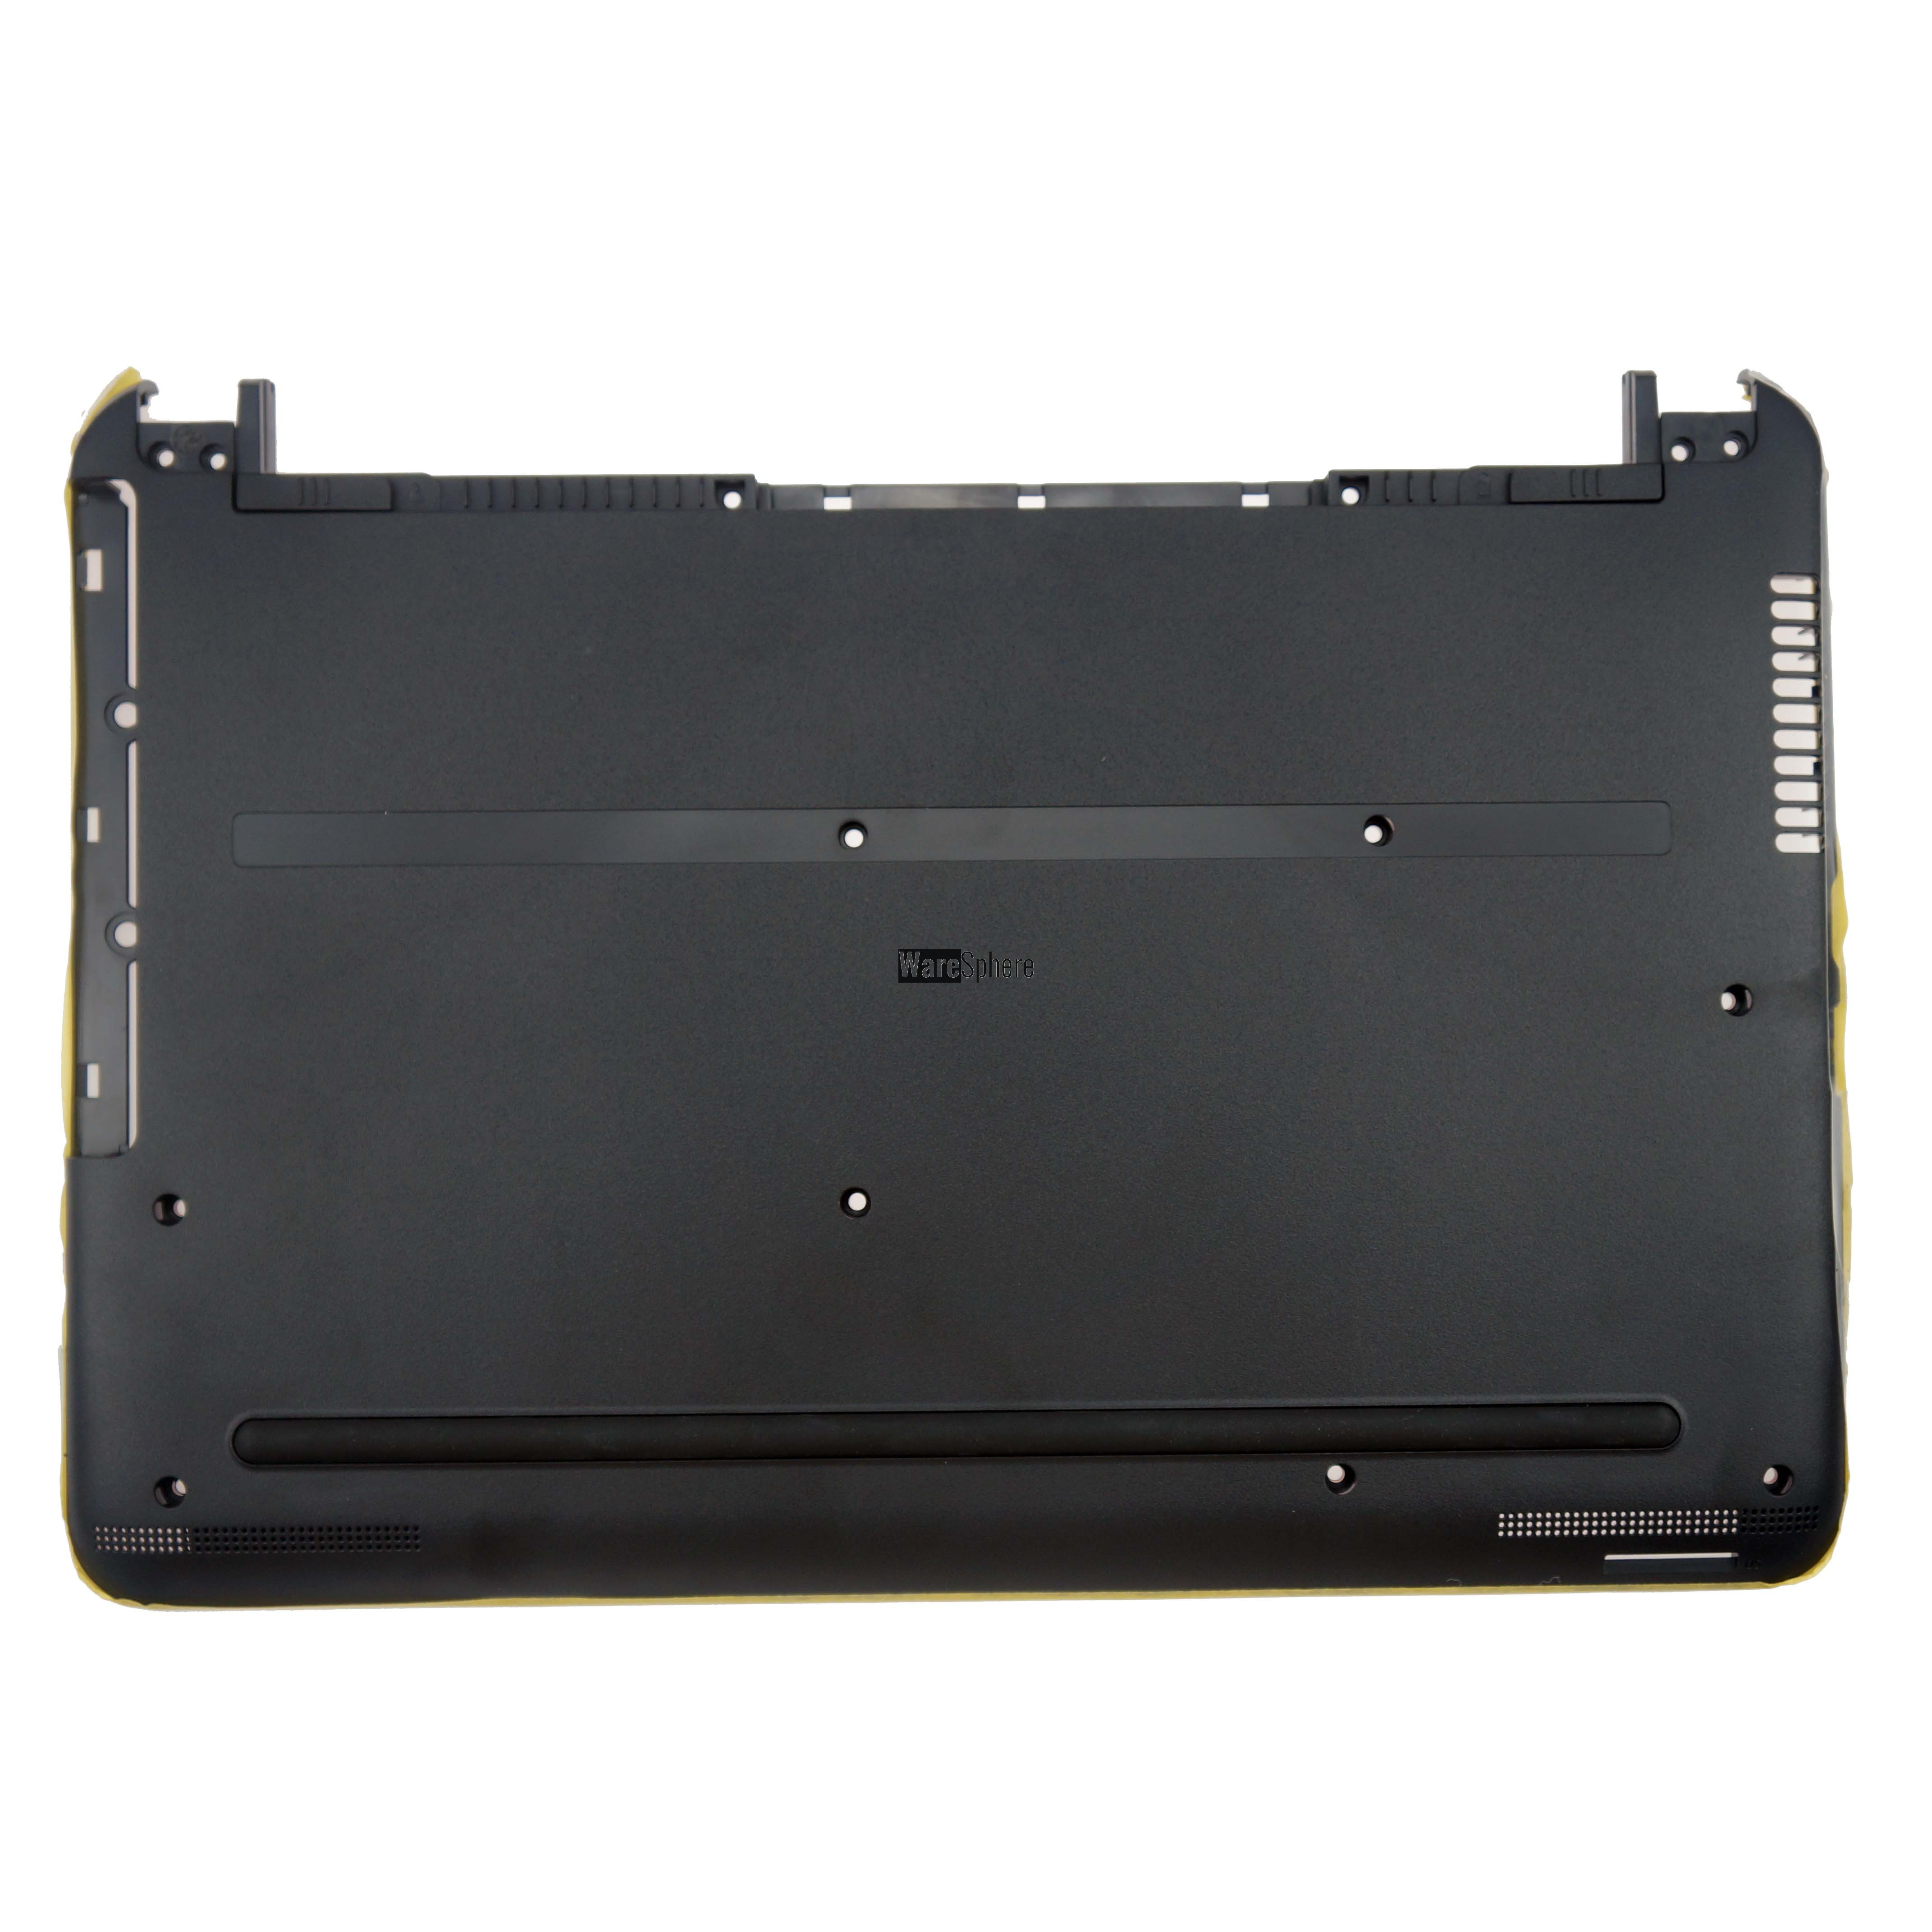 Bottom Base Cover for HP 340 348 G3 G4 6070B1006102 851535-001 Black